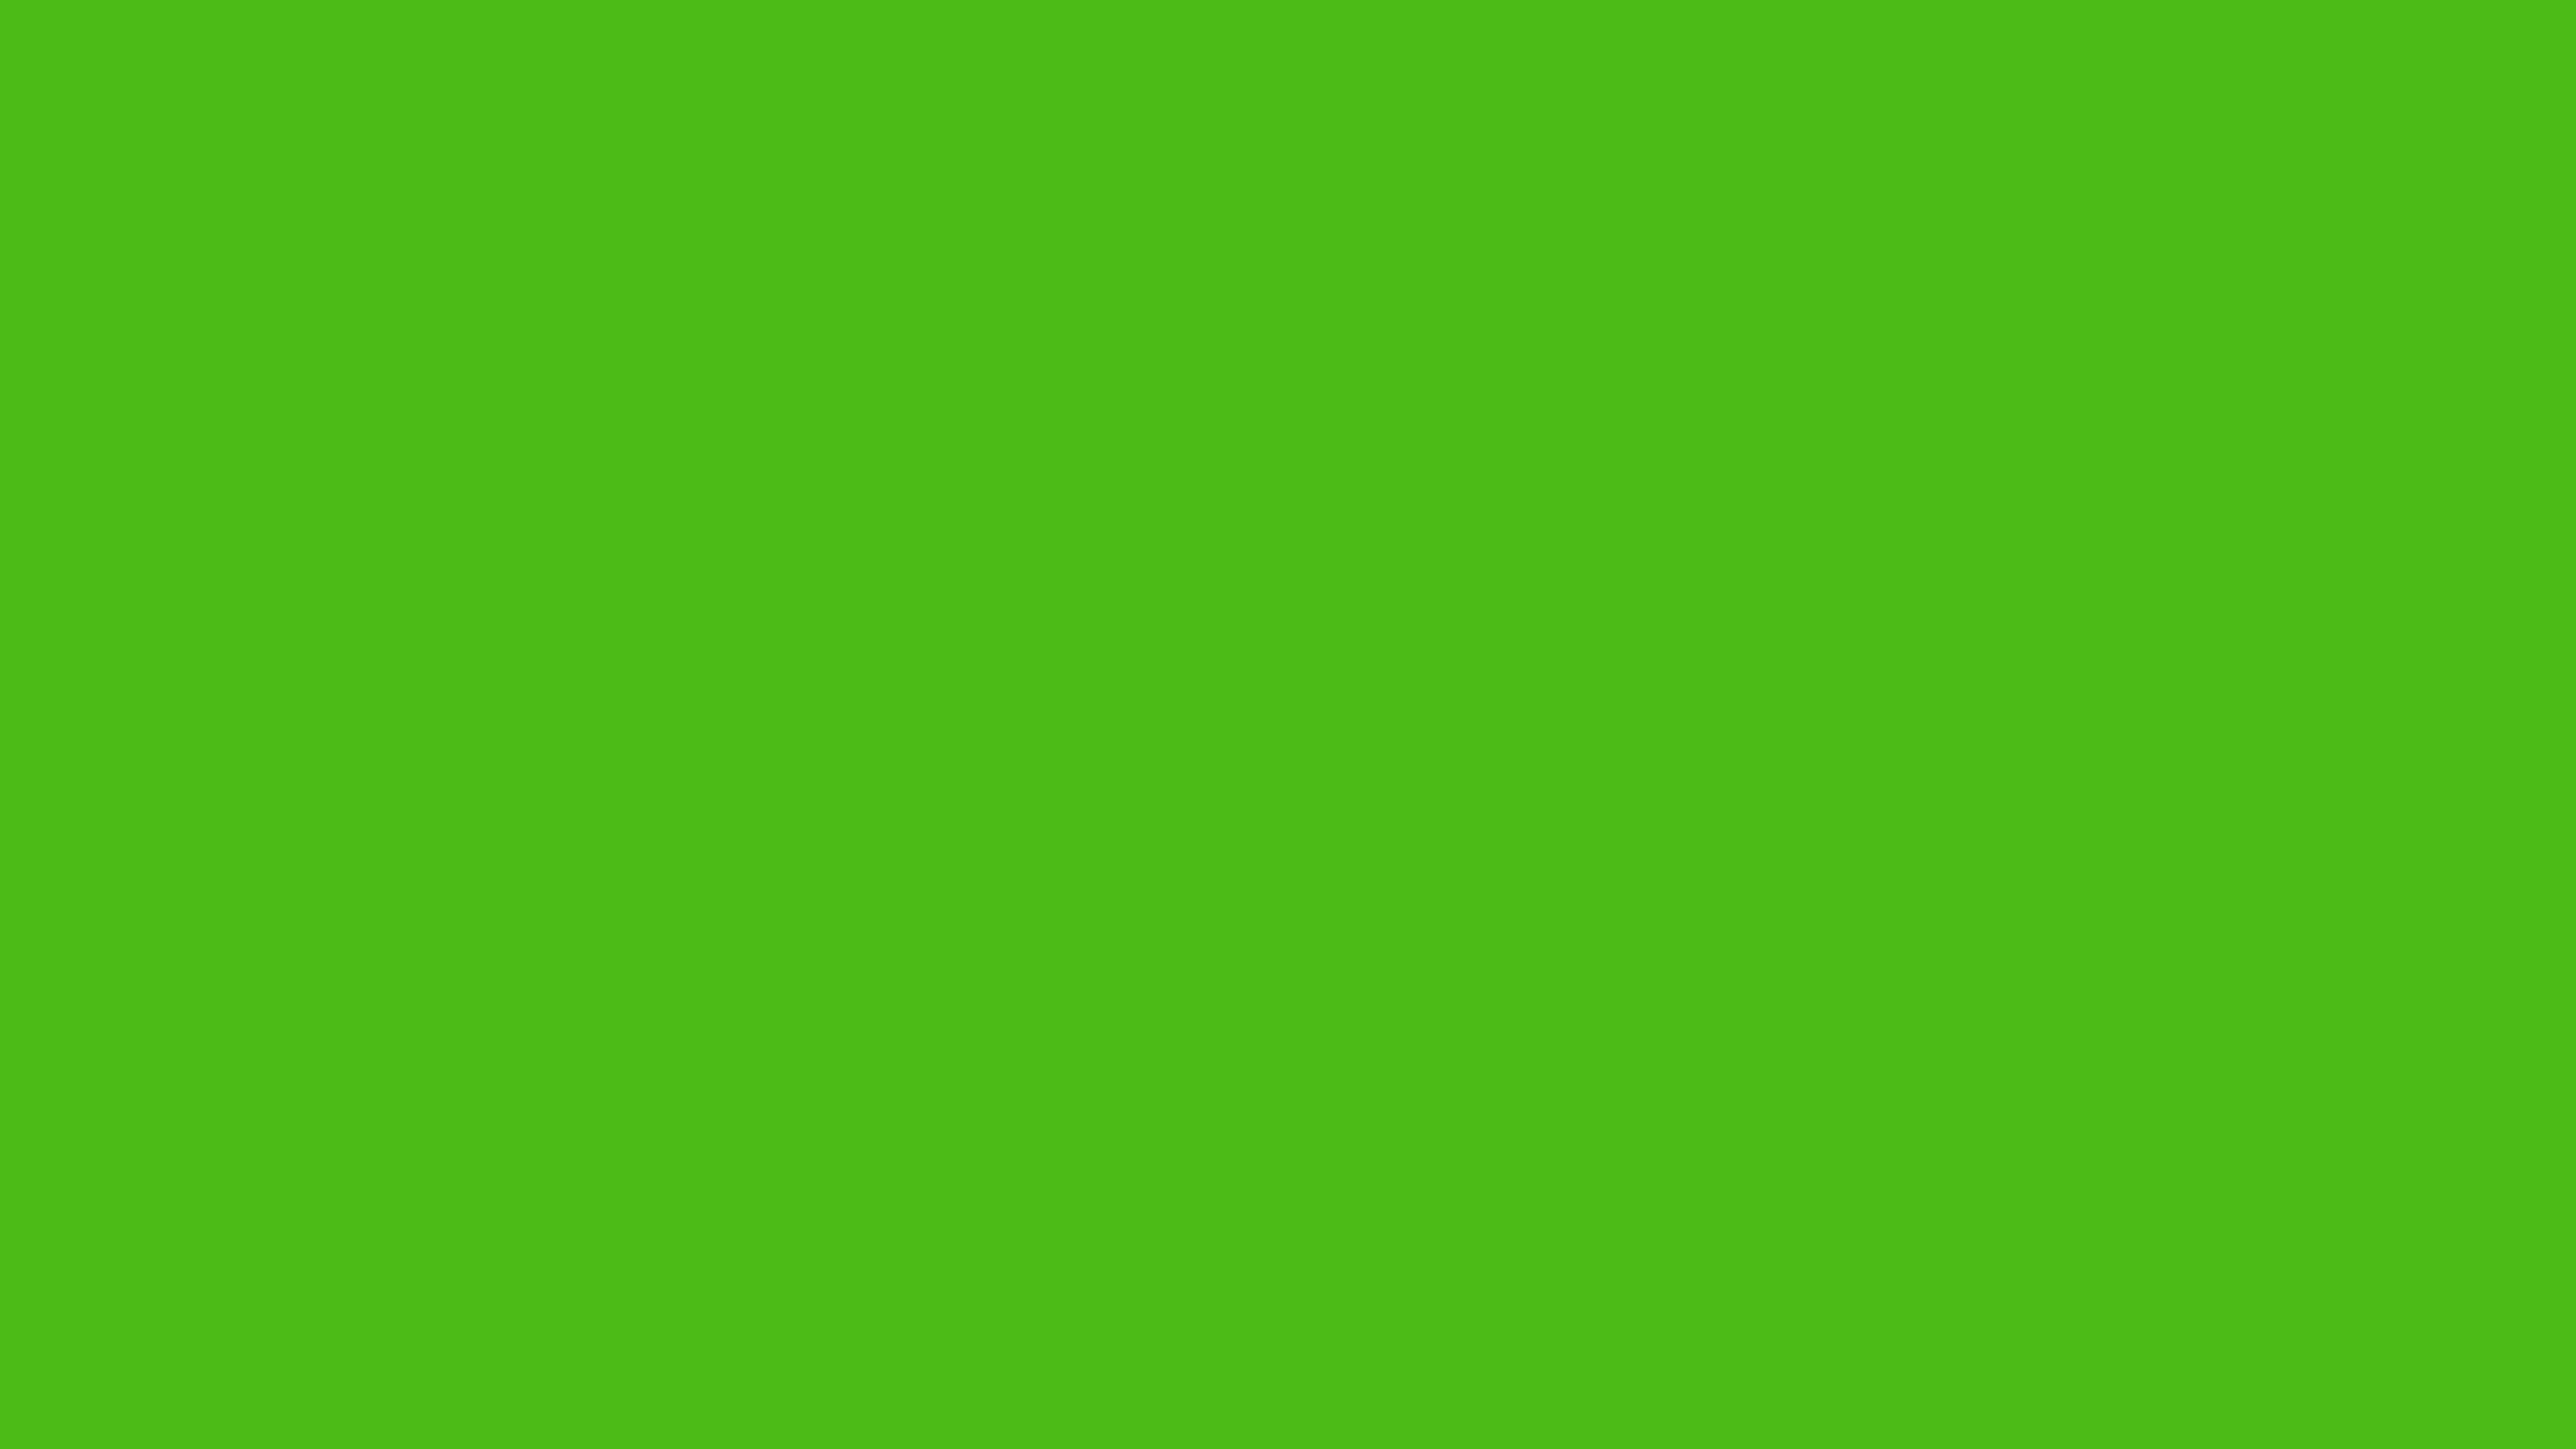 5120x2880 Kelly Green Solid Color Background